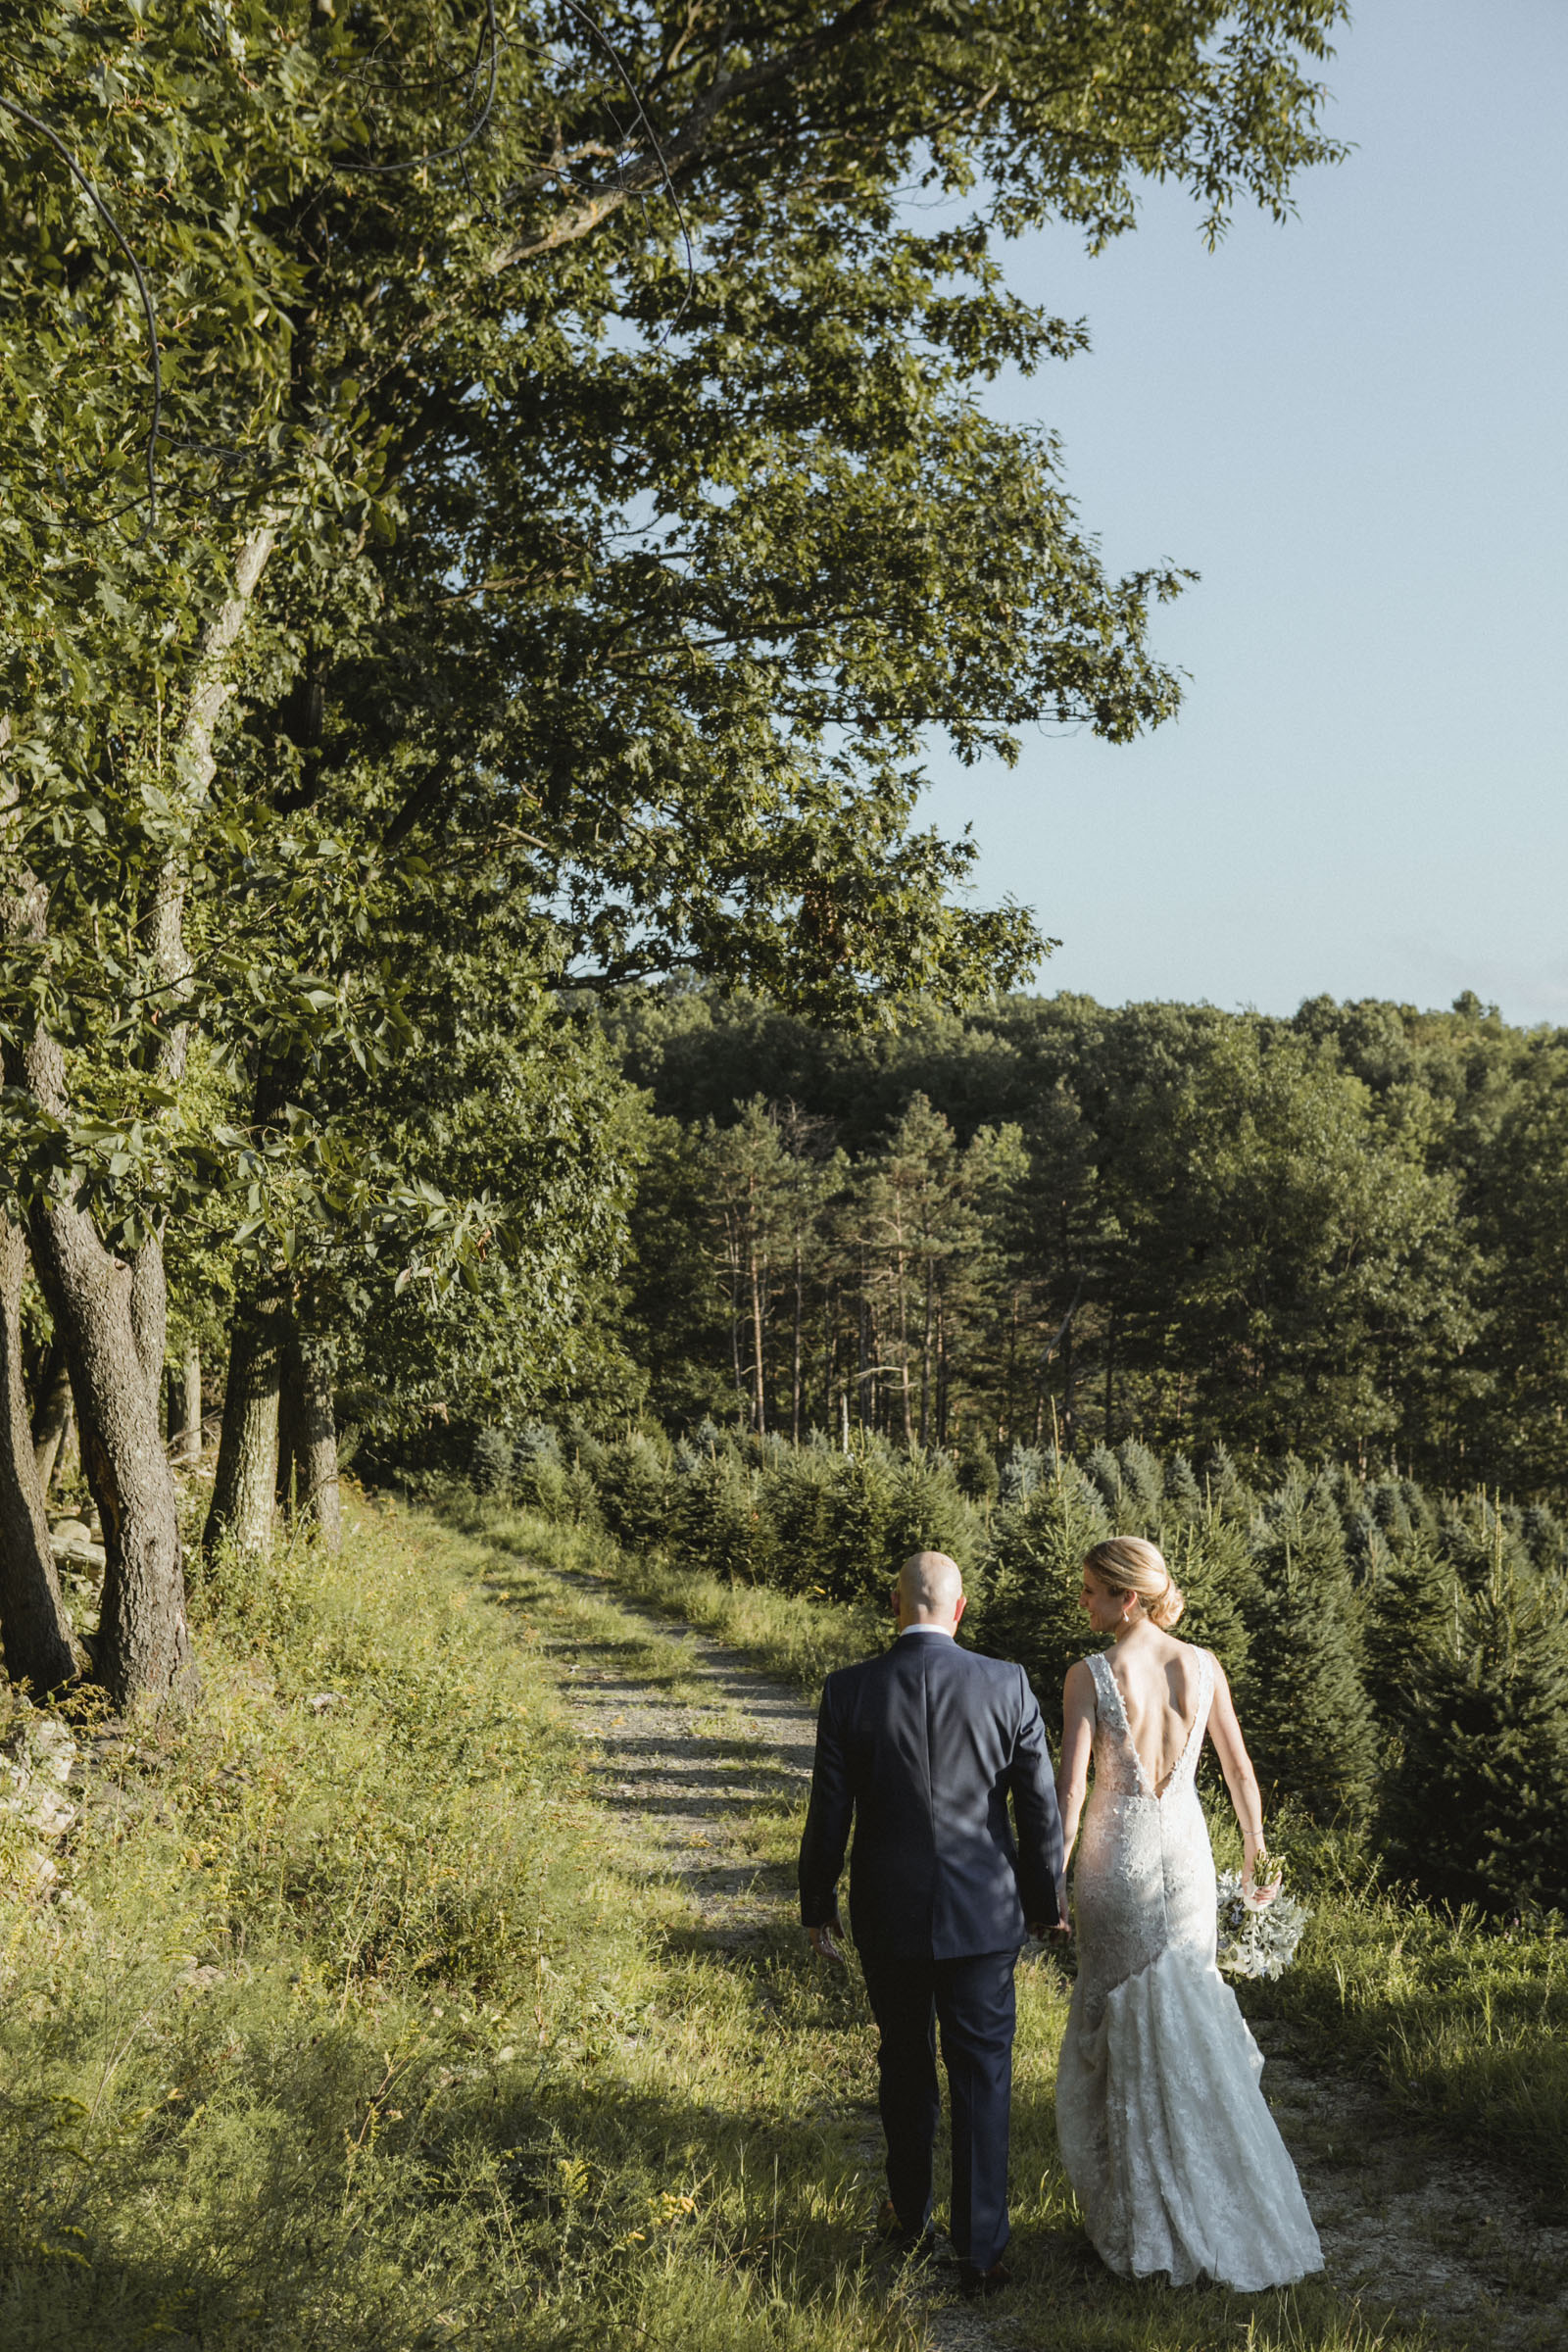 Amy Sims Photography | Bride and Groom walk hand in hand down a grassy path | Emmerich Tree Farm Wedding | Hudson Valley Wedding photographer